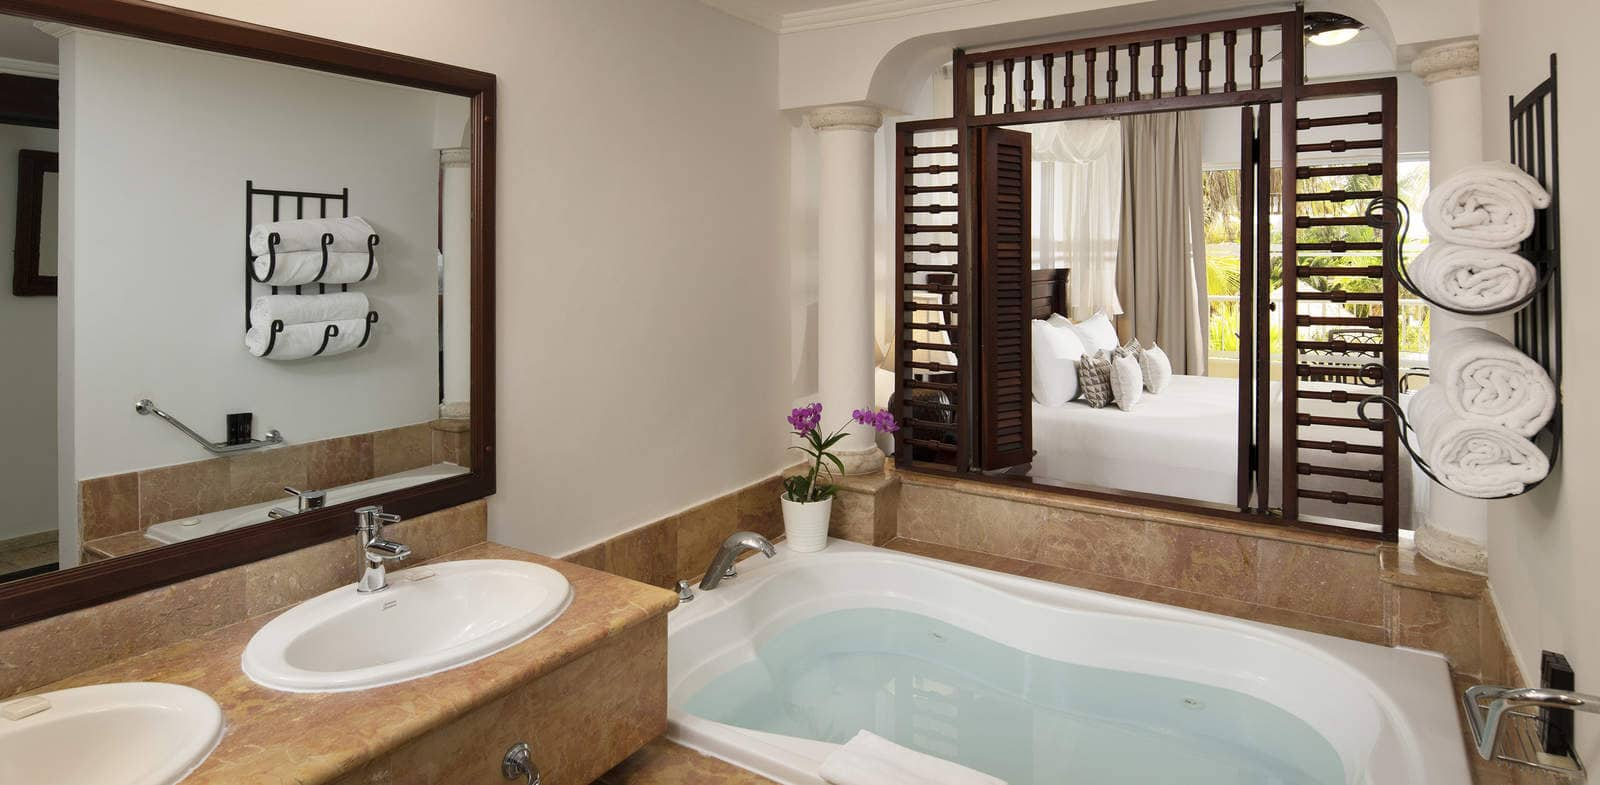 Then the meliá caribe beach hotel is. The Level Grand Suite Melia Caribe Beach Resort